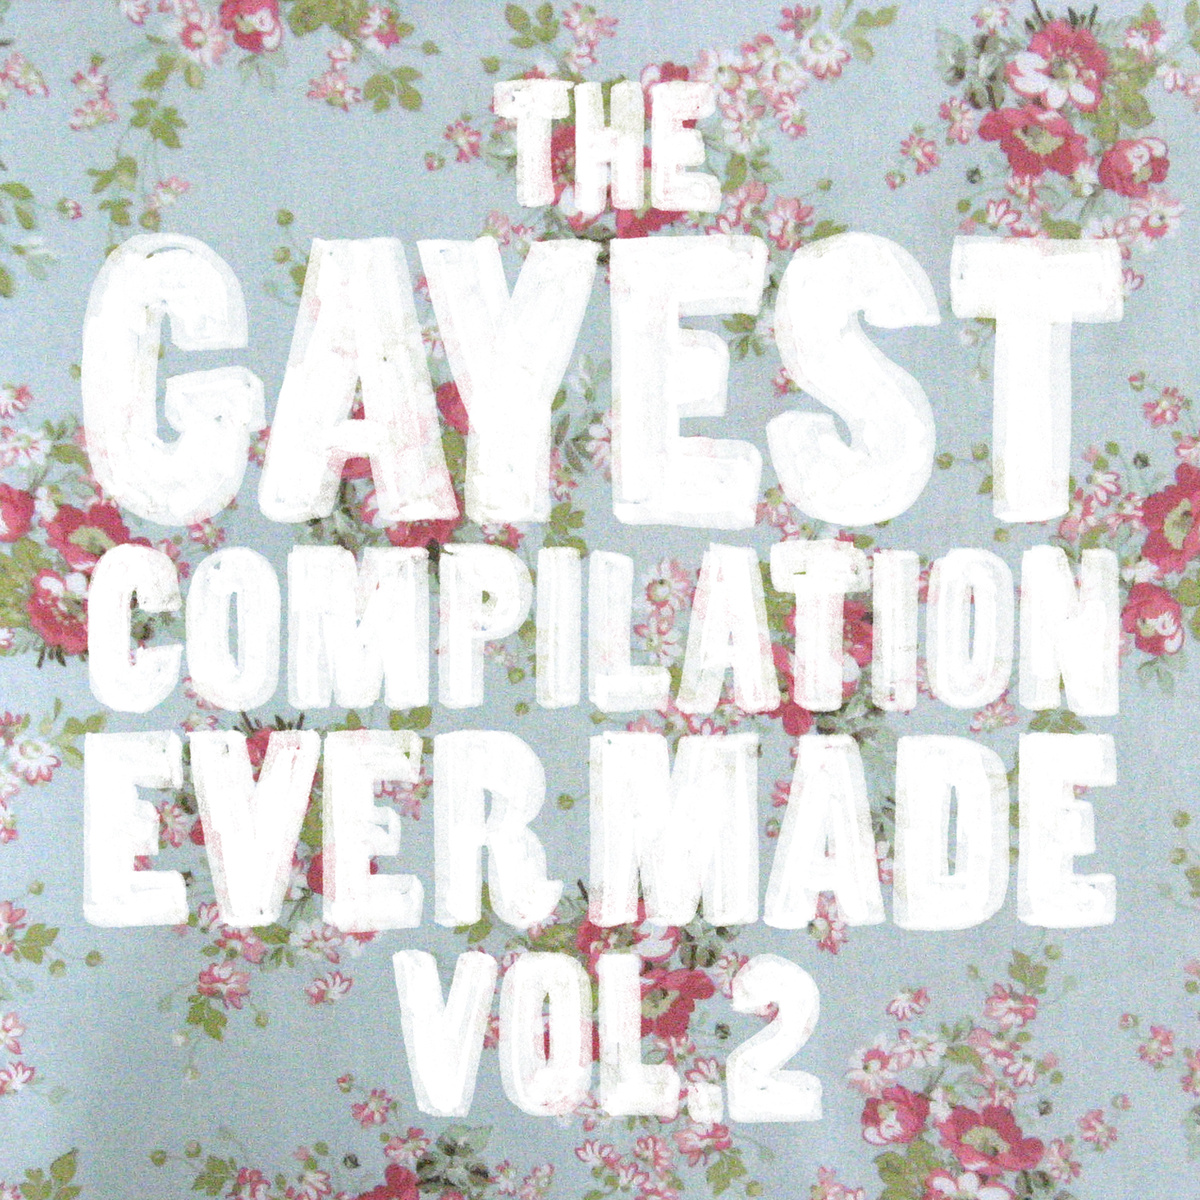 the gayest compilation ever made volume II